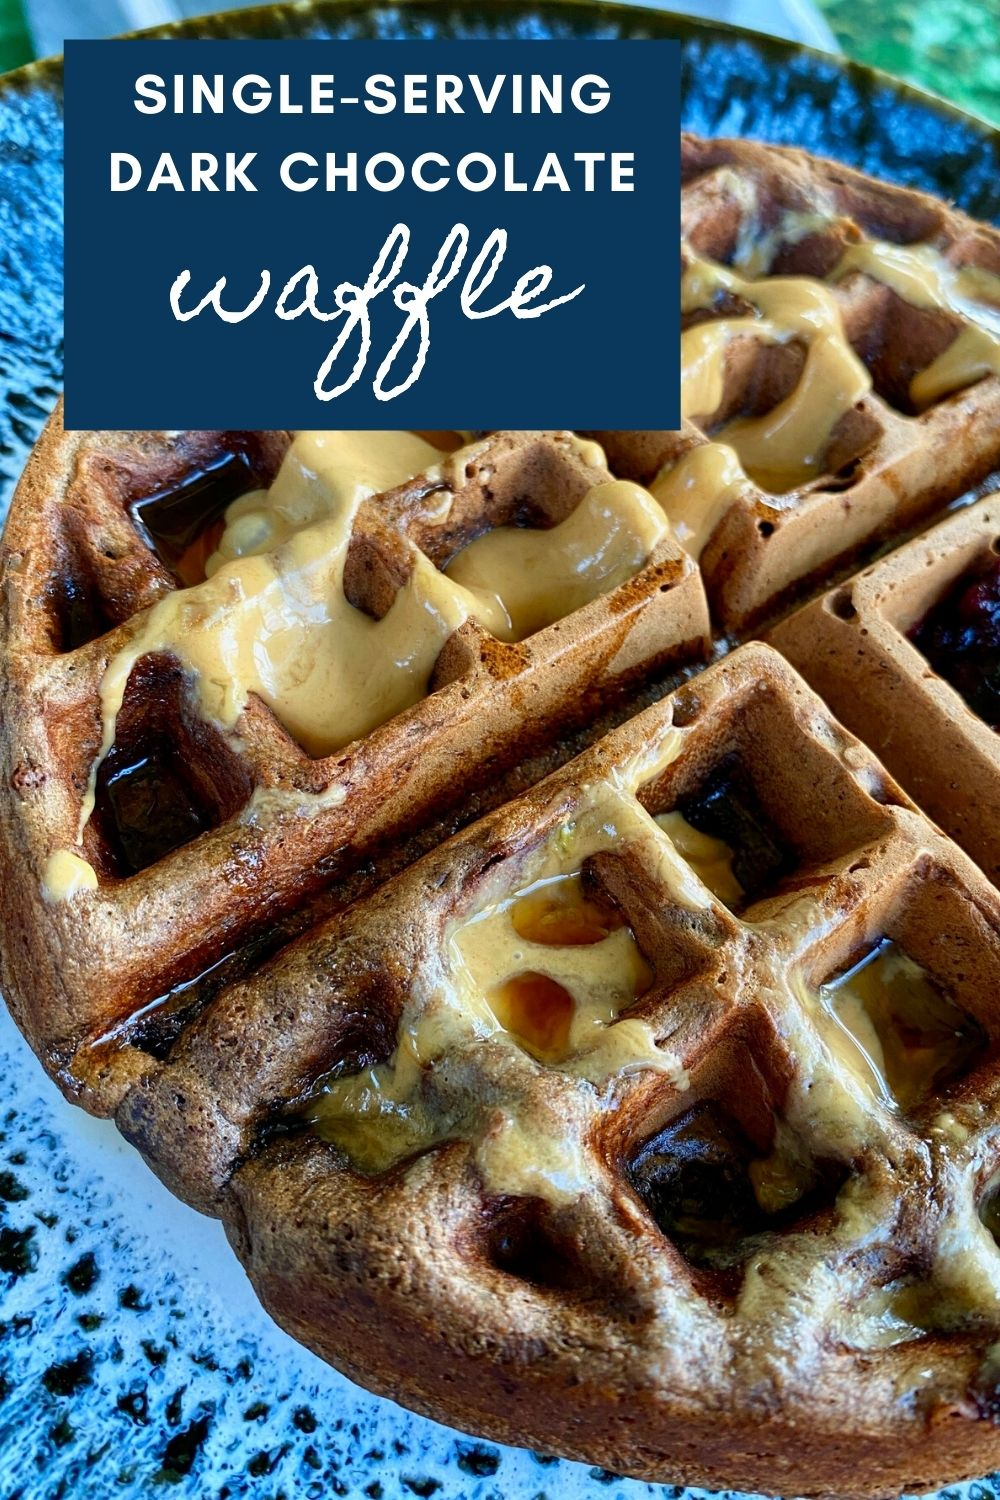 Single-Serving Dark Chocolate Waffle   This delicious waffle recipe is the perfect answer to last-minute cravings, serves one or two people comfortably and ready in 10 minutes! Small brunch recipes, single-serving brunch, small batch breakfast recipes, cooking for one, brunch for one. A delicious single-serving chocolate waffle! #chocolate #waffle #singleserving #smallbatch #brunch